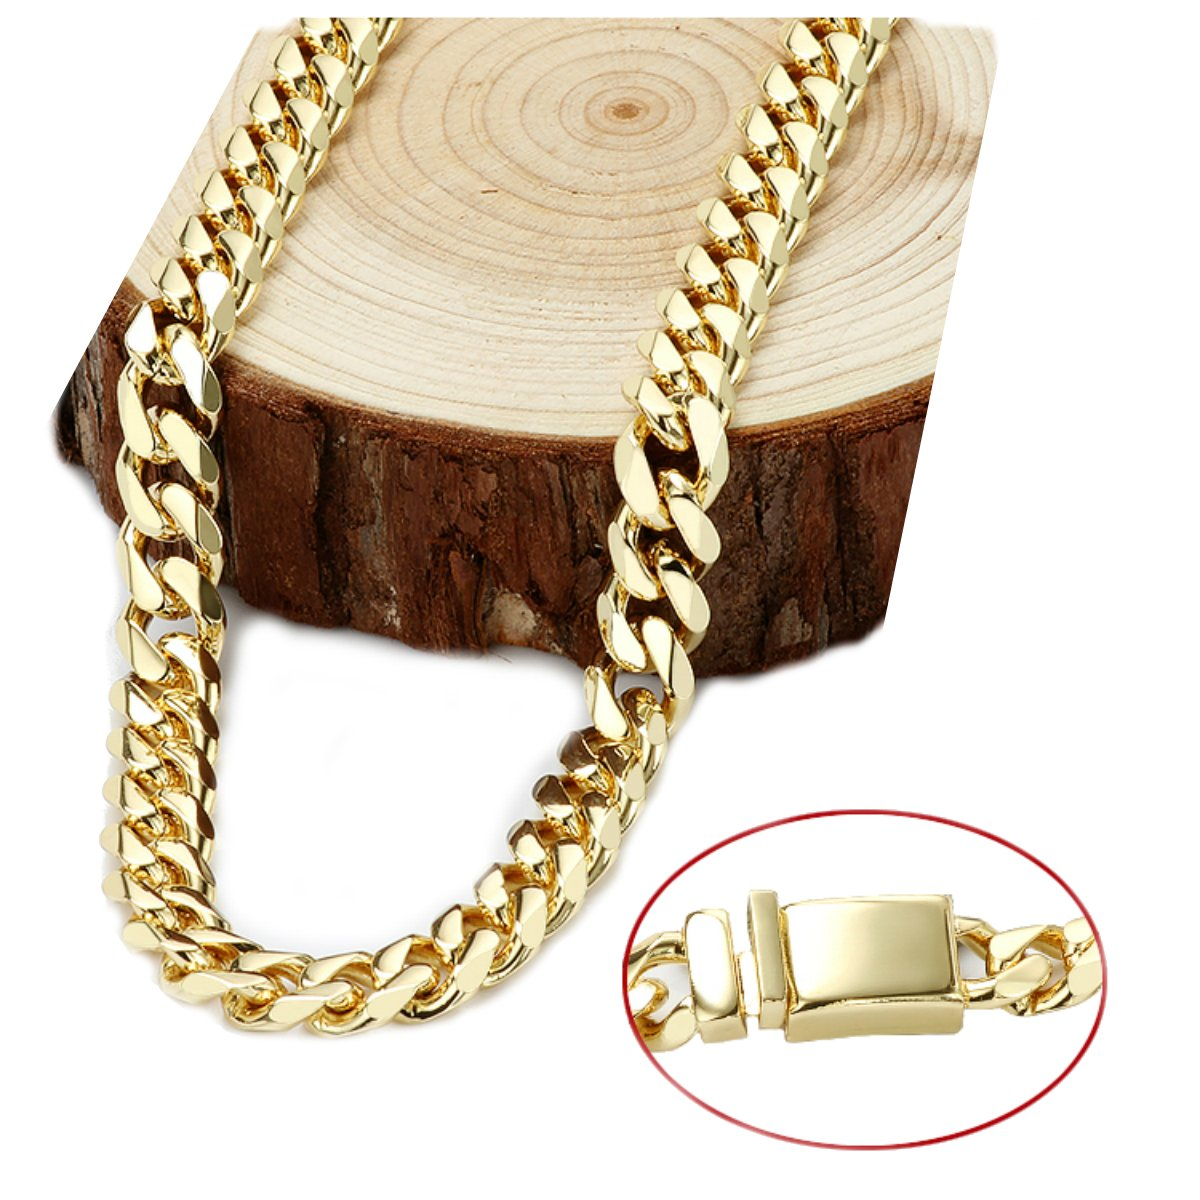 Gold chain necklace 14.5MM 24K Diamond cut Smooth Cuban Link with Warranty Of A LifeTimeLifetime USA made (28) by 14k Diamond Cut Smooth Cuban (Image #1)